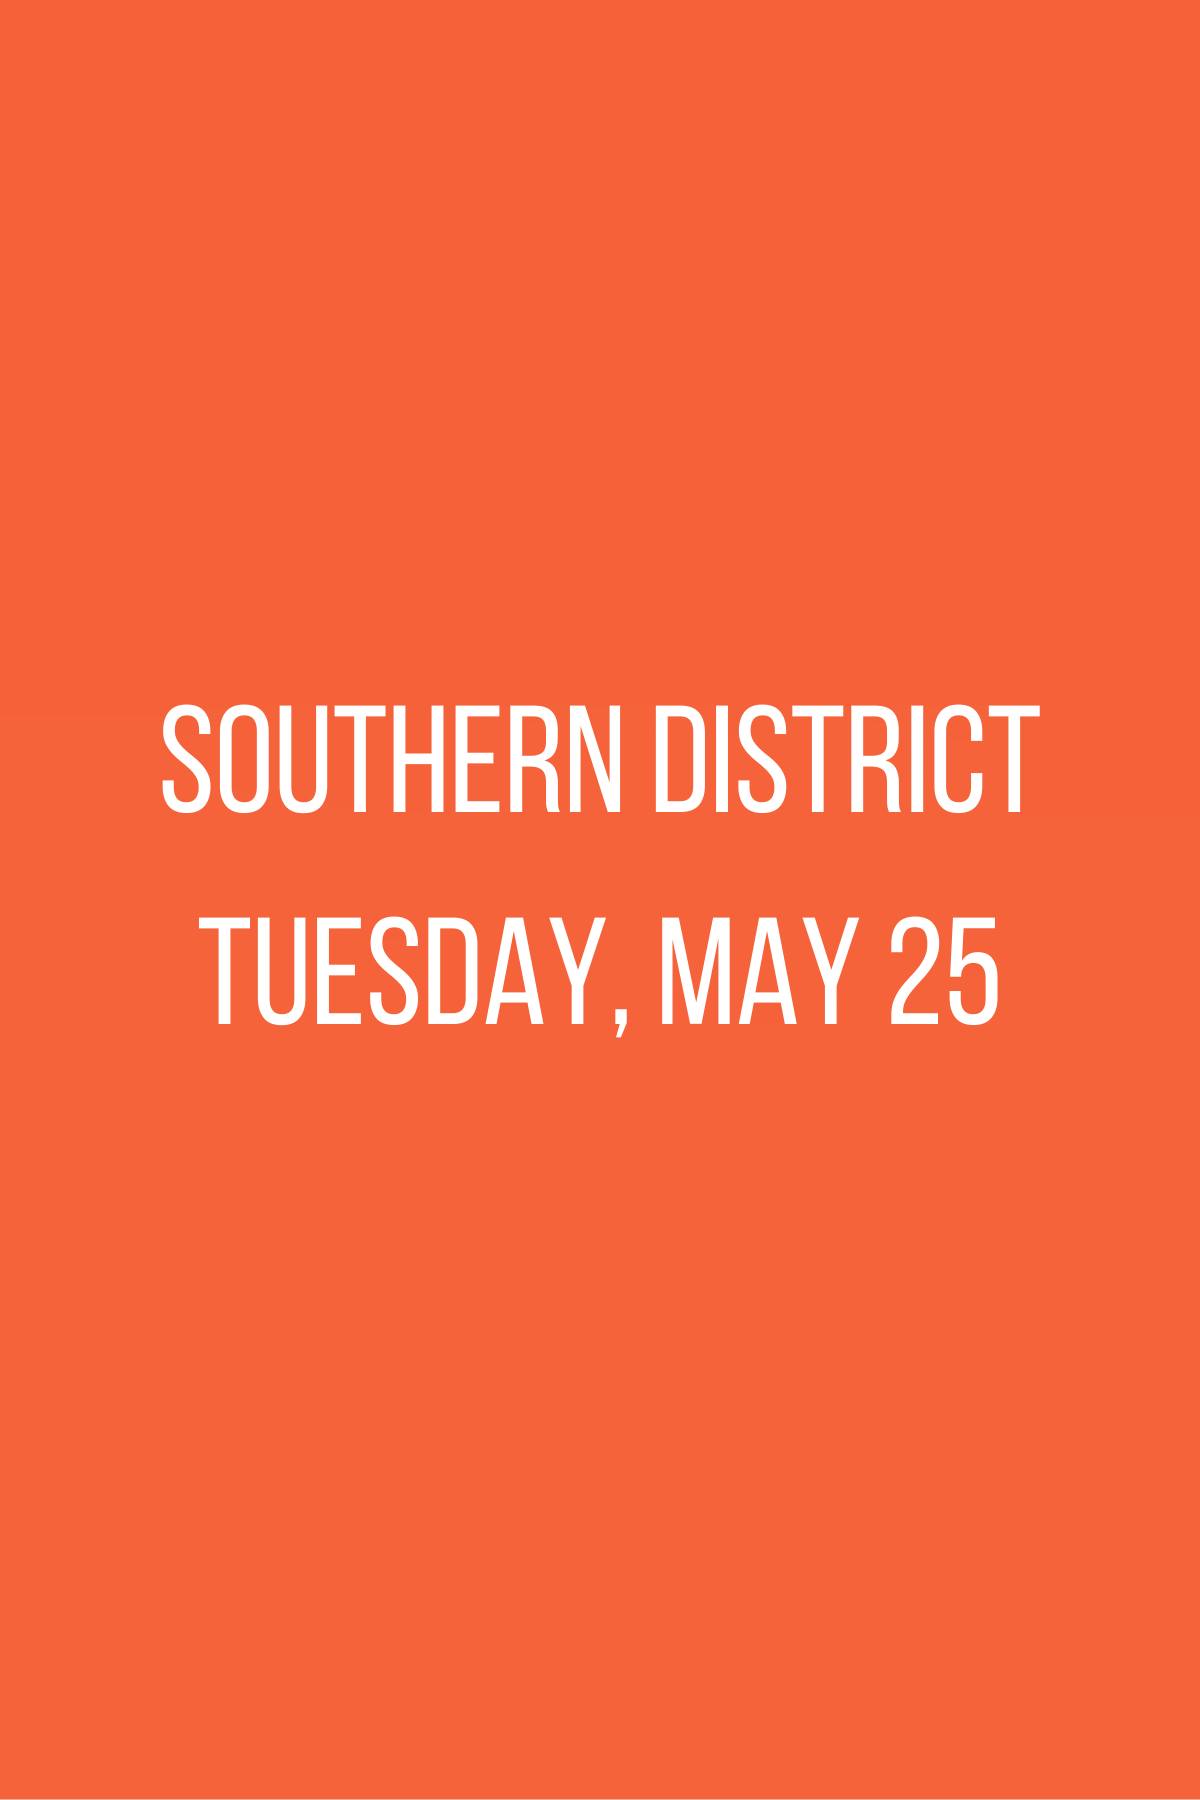 Southern District Meeting - Tuesday, May 25